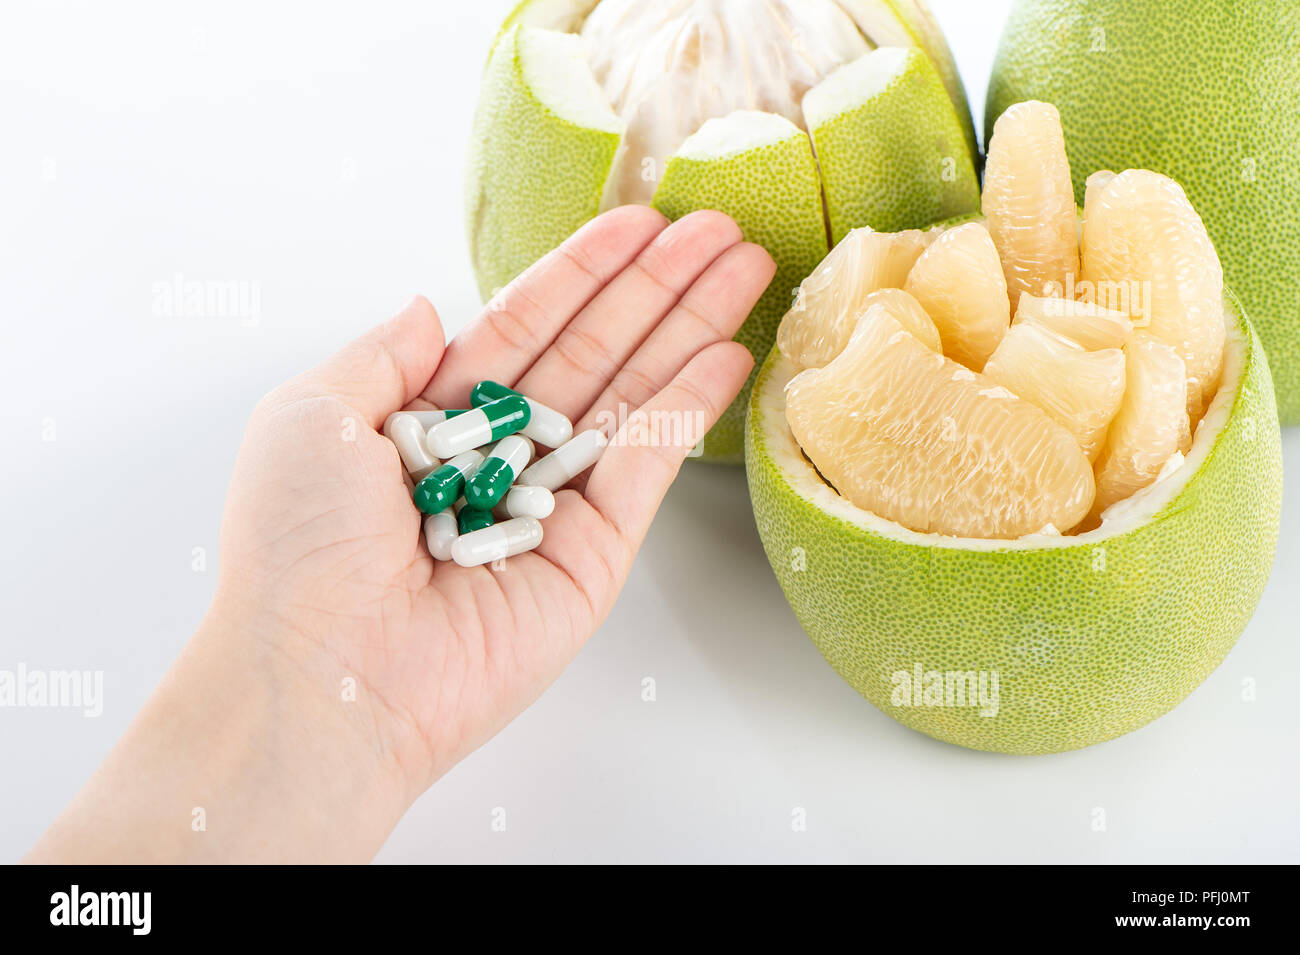 fresh and peeled pomelo(shaddock), grapefruit with drug, concept of drug interatcions - Stock Image